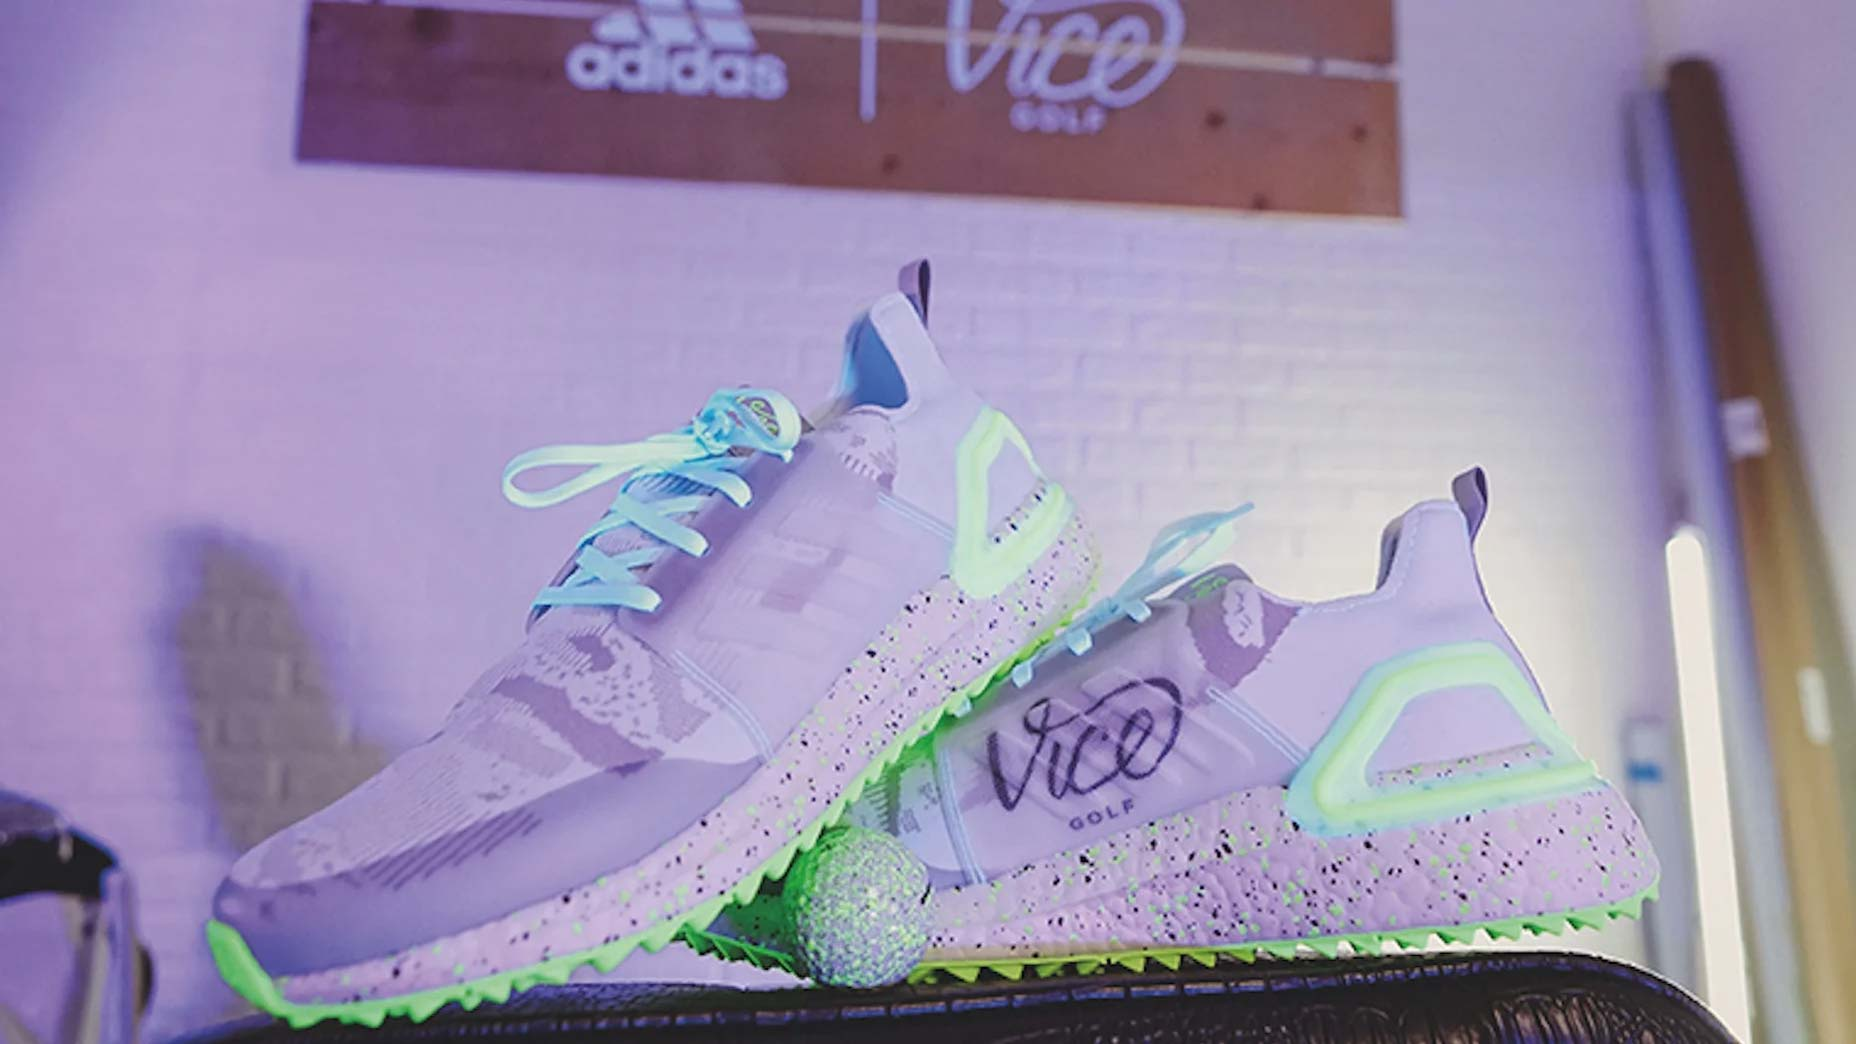 Adidas golf shoe collaboration with Vice